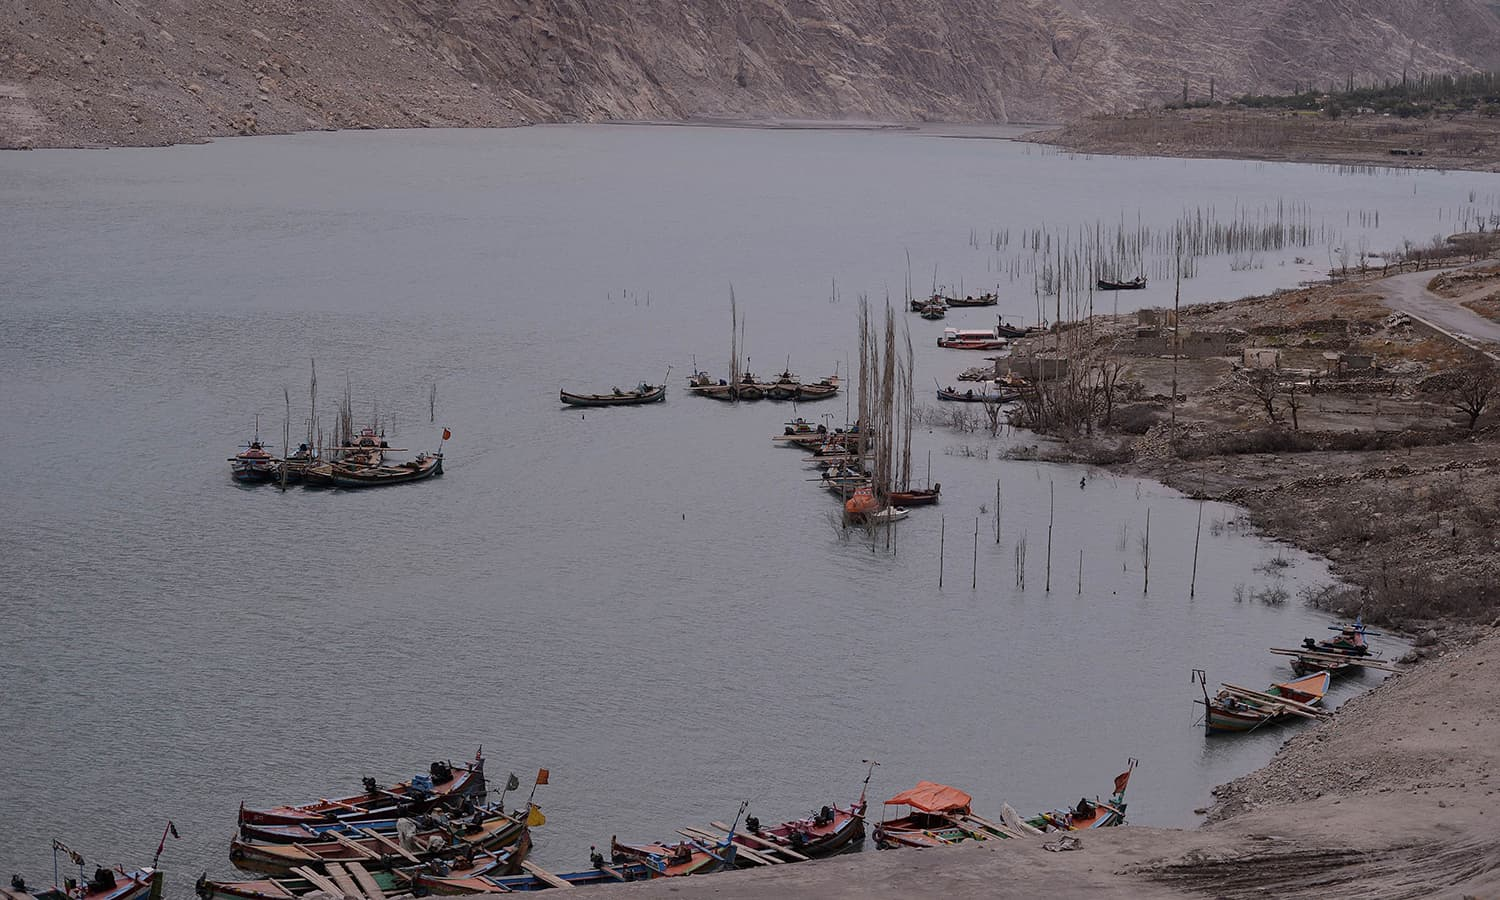 Boats are moored in Attabad Lake, which was formed following a landslide in January 2010, in Pakistan's Gojal Valley. — AFP